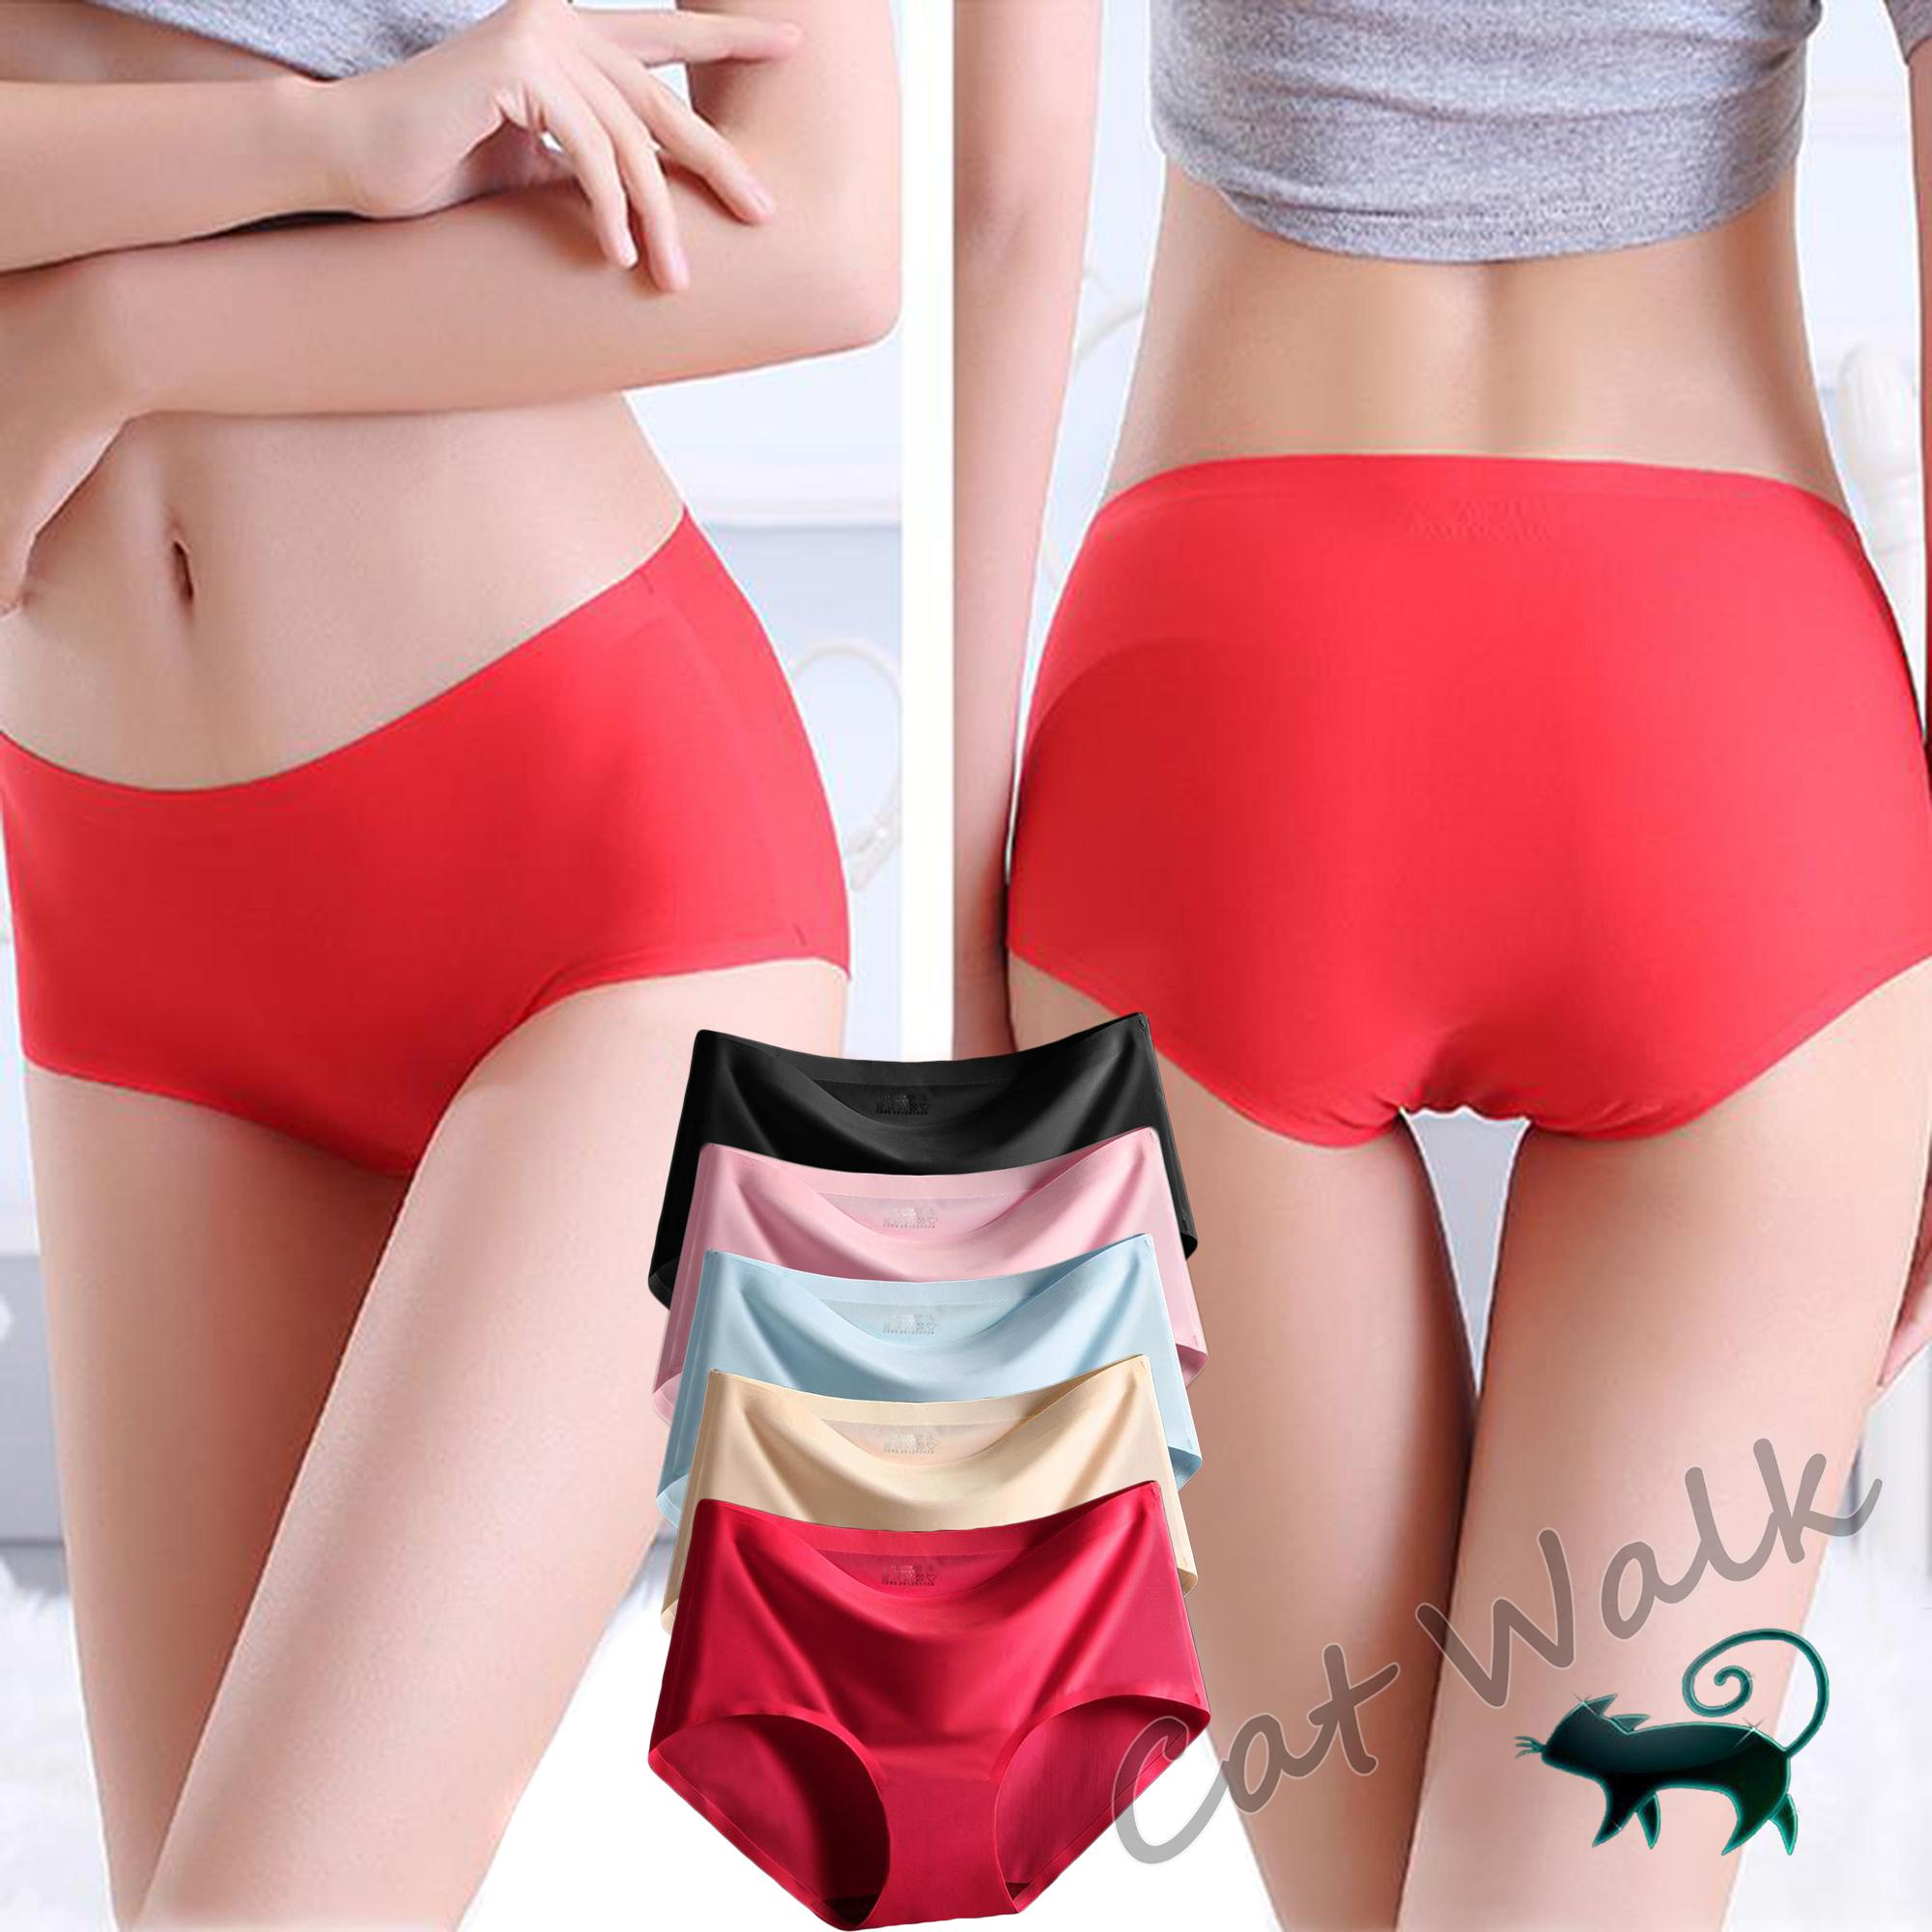 Underwear & Sleepwears Humor Women Anti-bacteria Seamless Underwear Sports Wear Ladies Mid Waist Underwear Pants Boxers Elastic Hip Lift